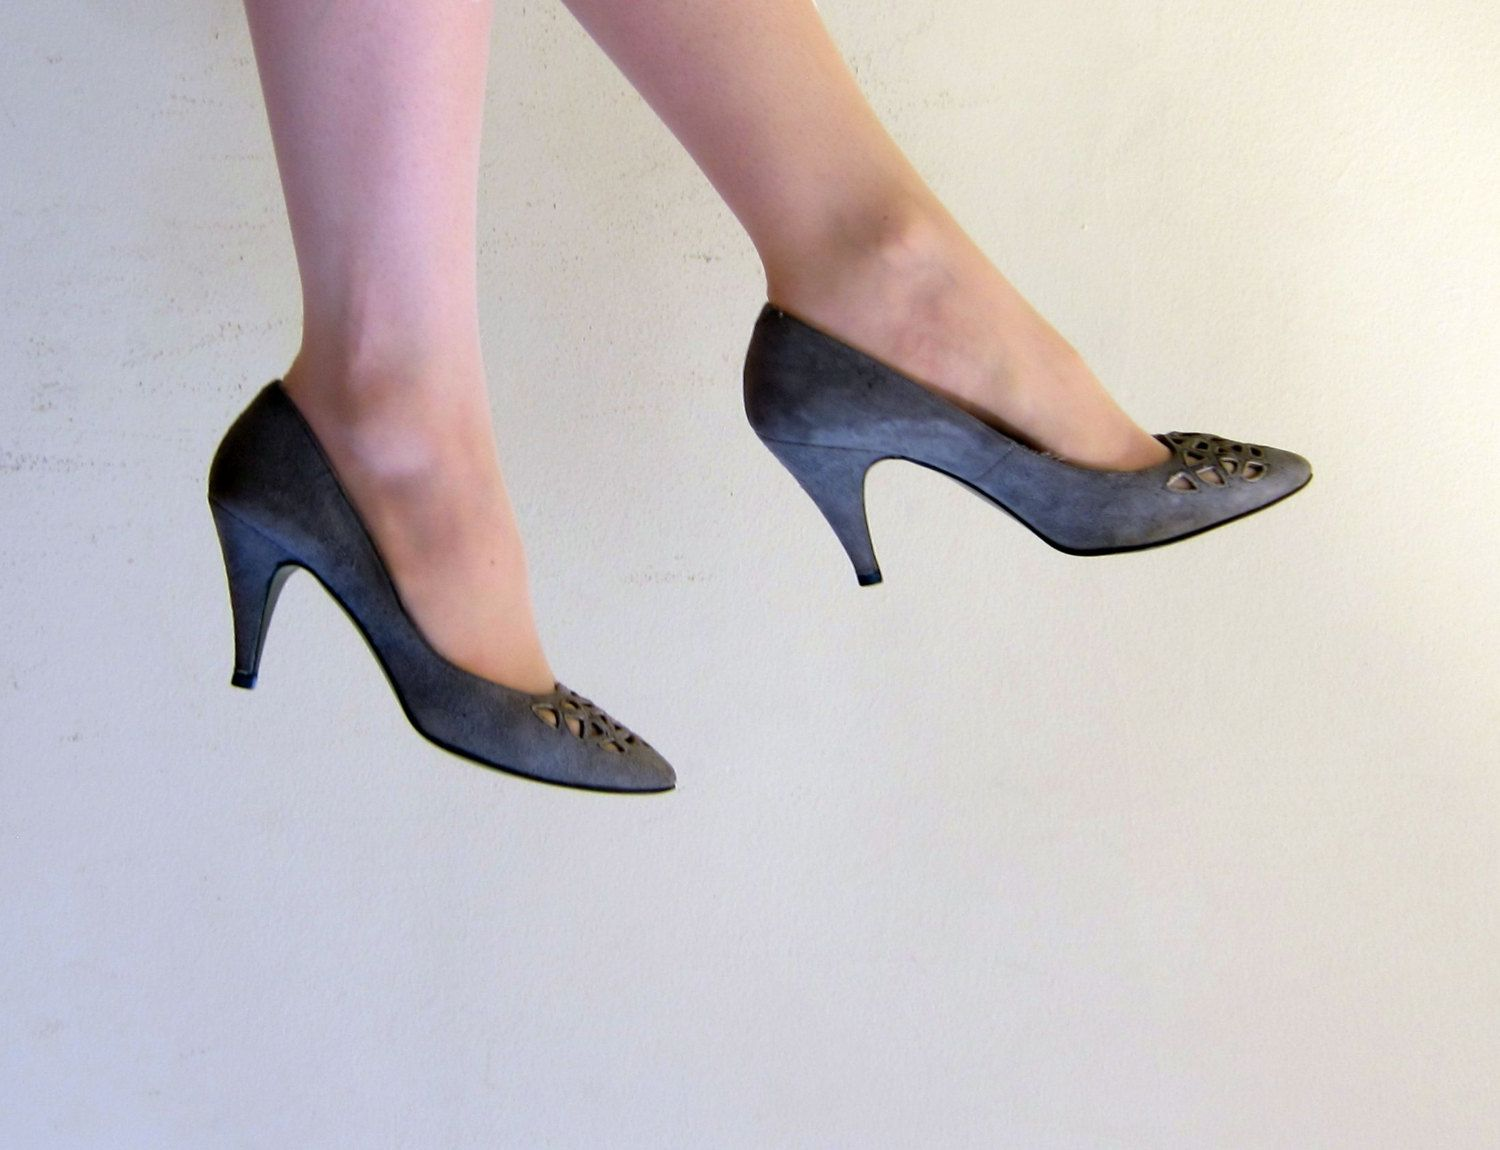 58a5e1cc93512 Vintage 1980s Grey Suede High Heeled Pumps / 80s Shoes with Cut Outs  Chandlers / 6 1/2 by BasyaBerkman on Etsy